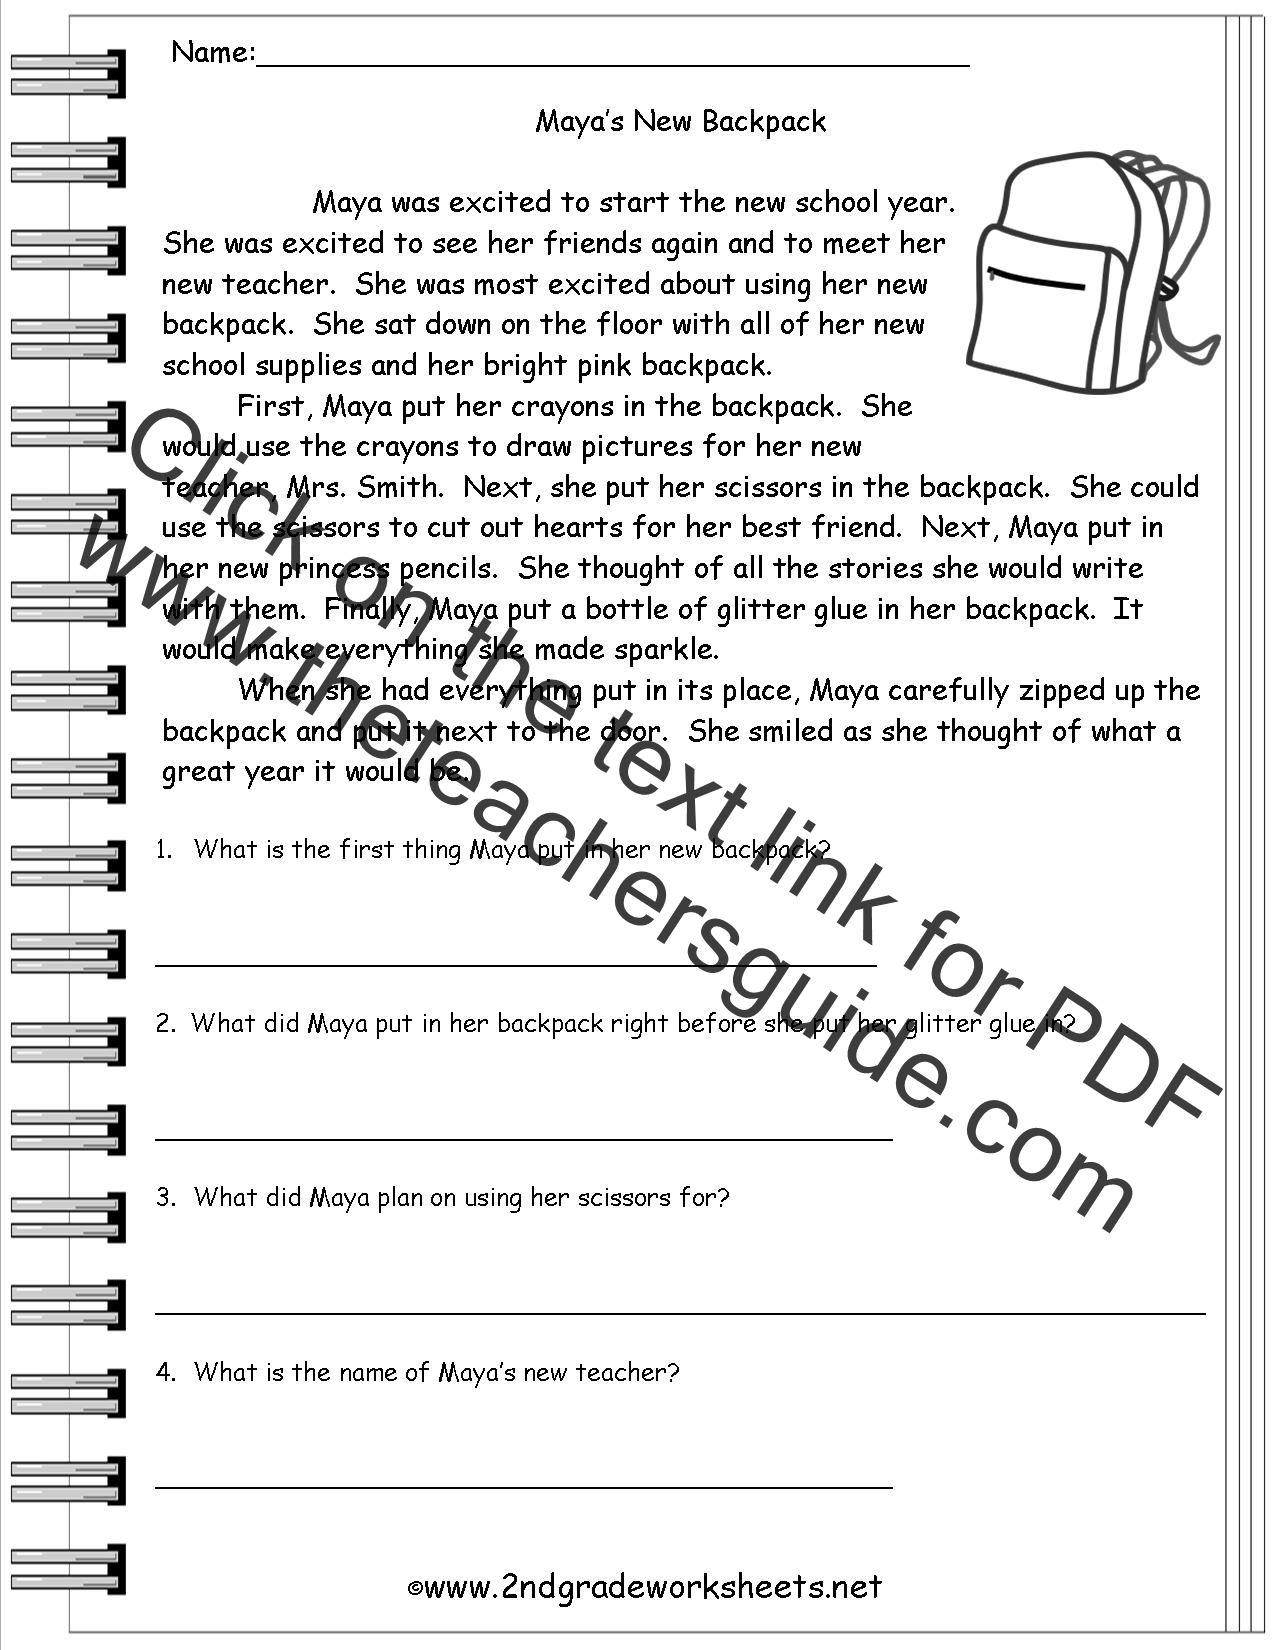 Free Worksheet 4th Grade Reading Worksheets Printable Free worksheets reading kindergarten free printable first grade comprehension k5 worksheets